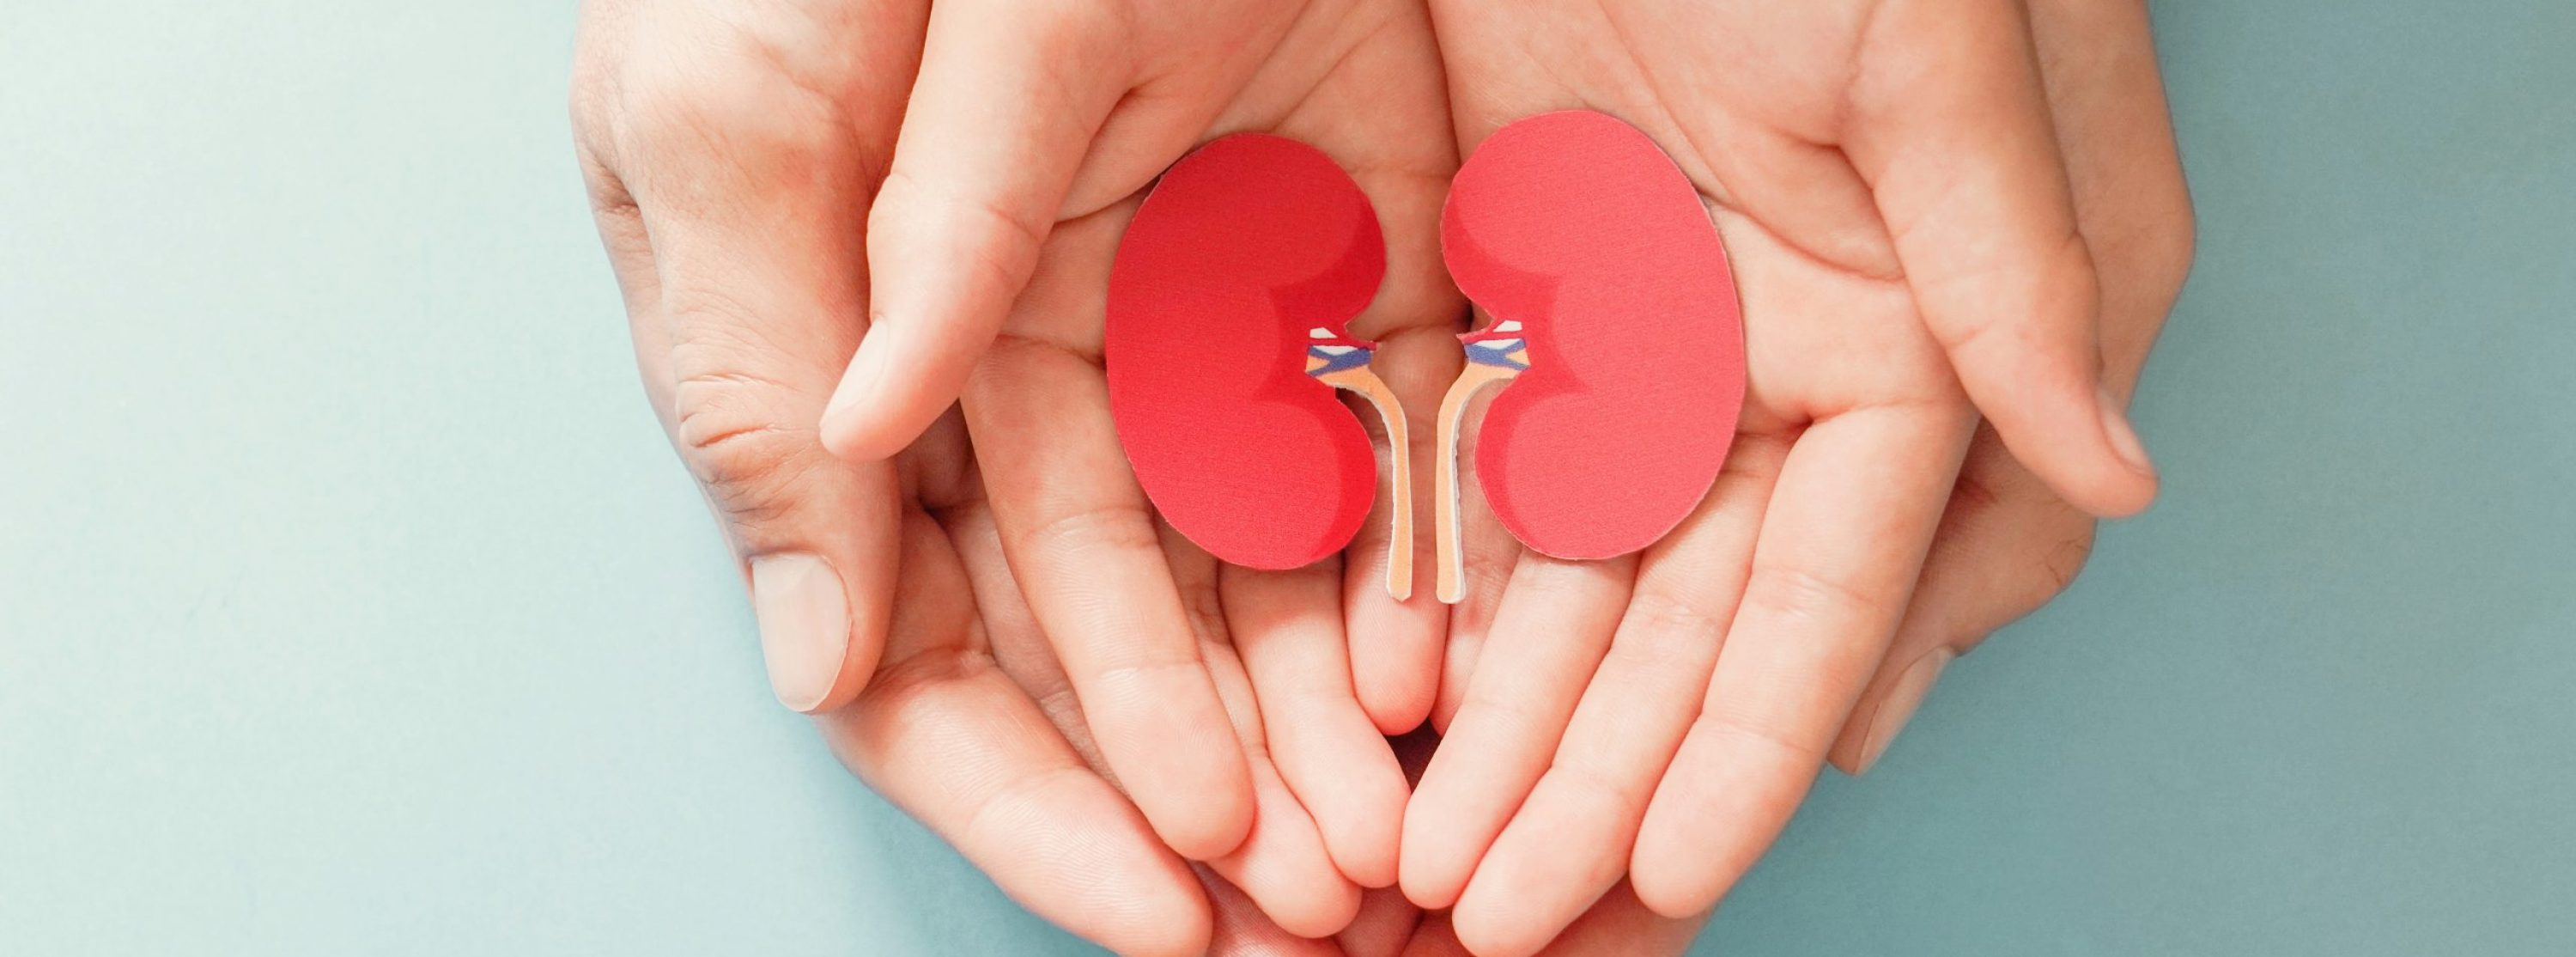 Adult and child holding kidney shaped paper, world kidney day, National Organ Donor Day, charity donation concept